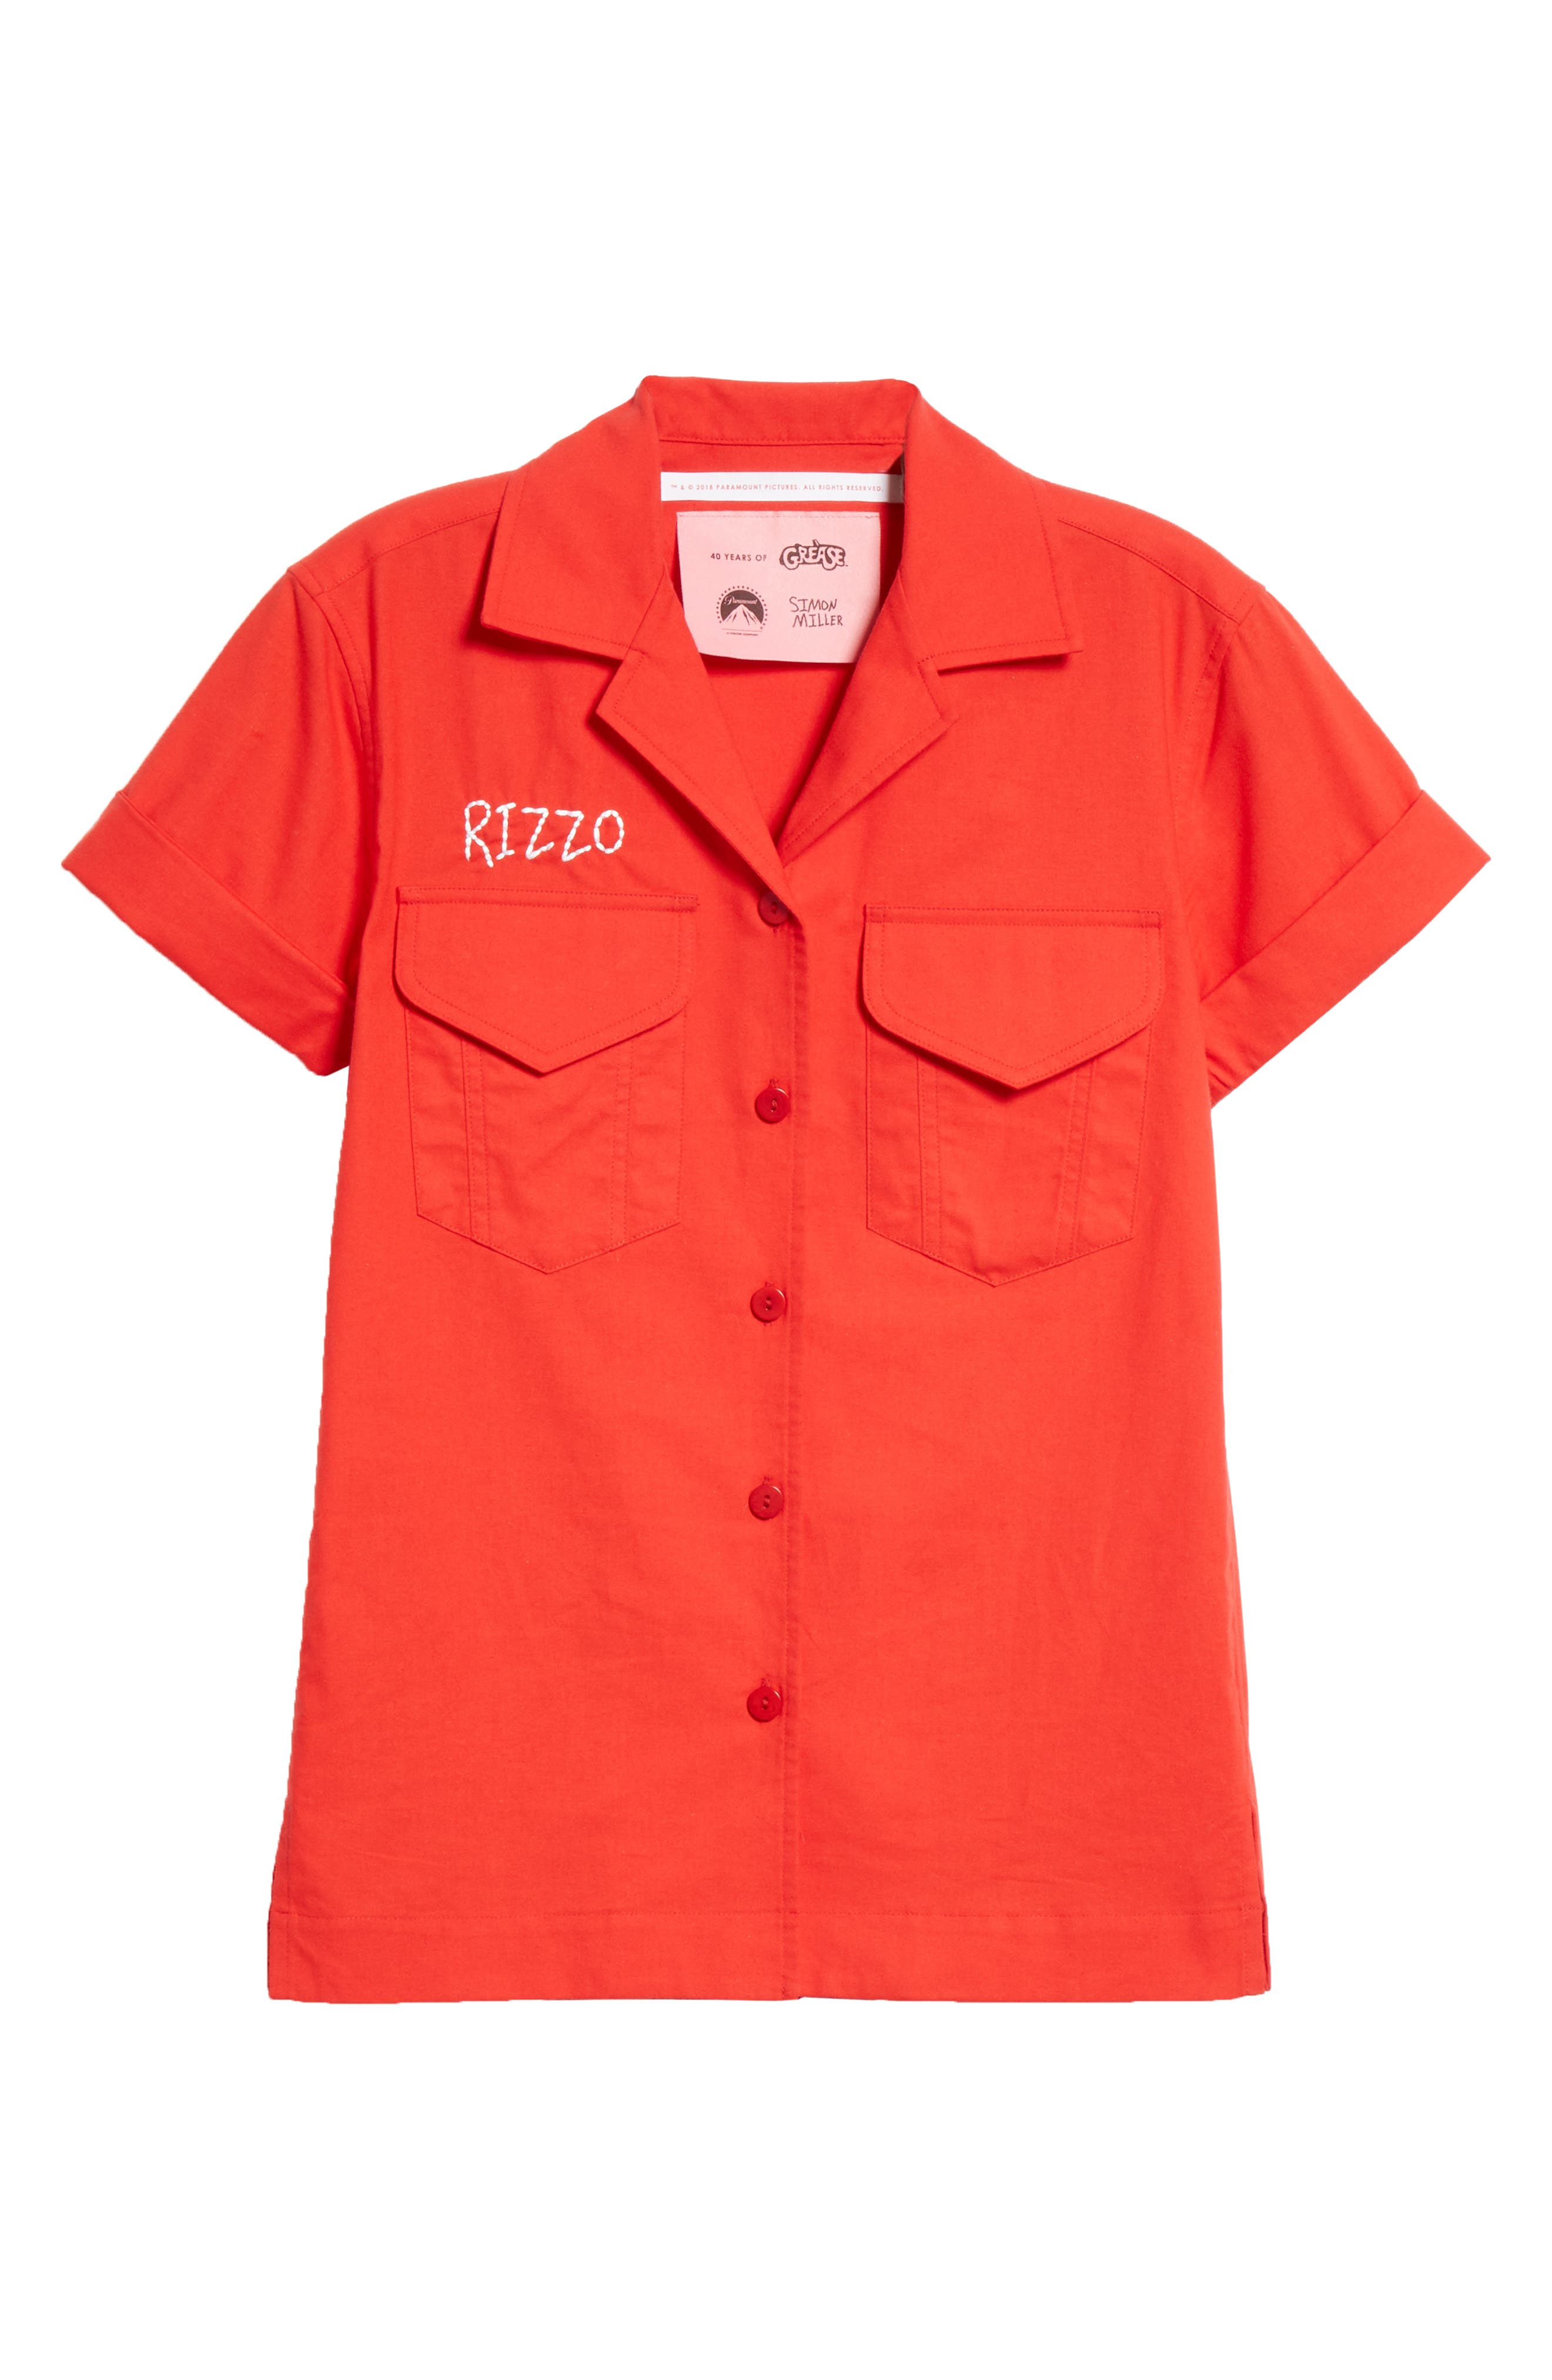 x Paramount Grease Rizzo Embroidered Mechanic Shirt,                             Alternate thumbnail 6, color,                             RIZZO RED